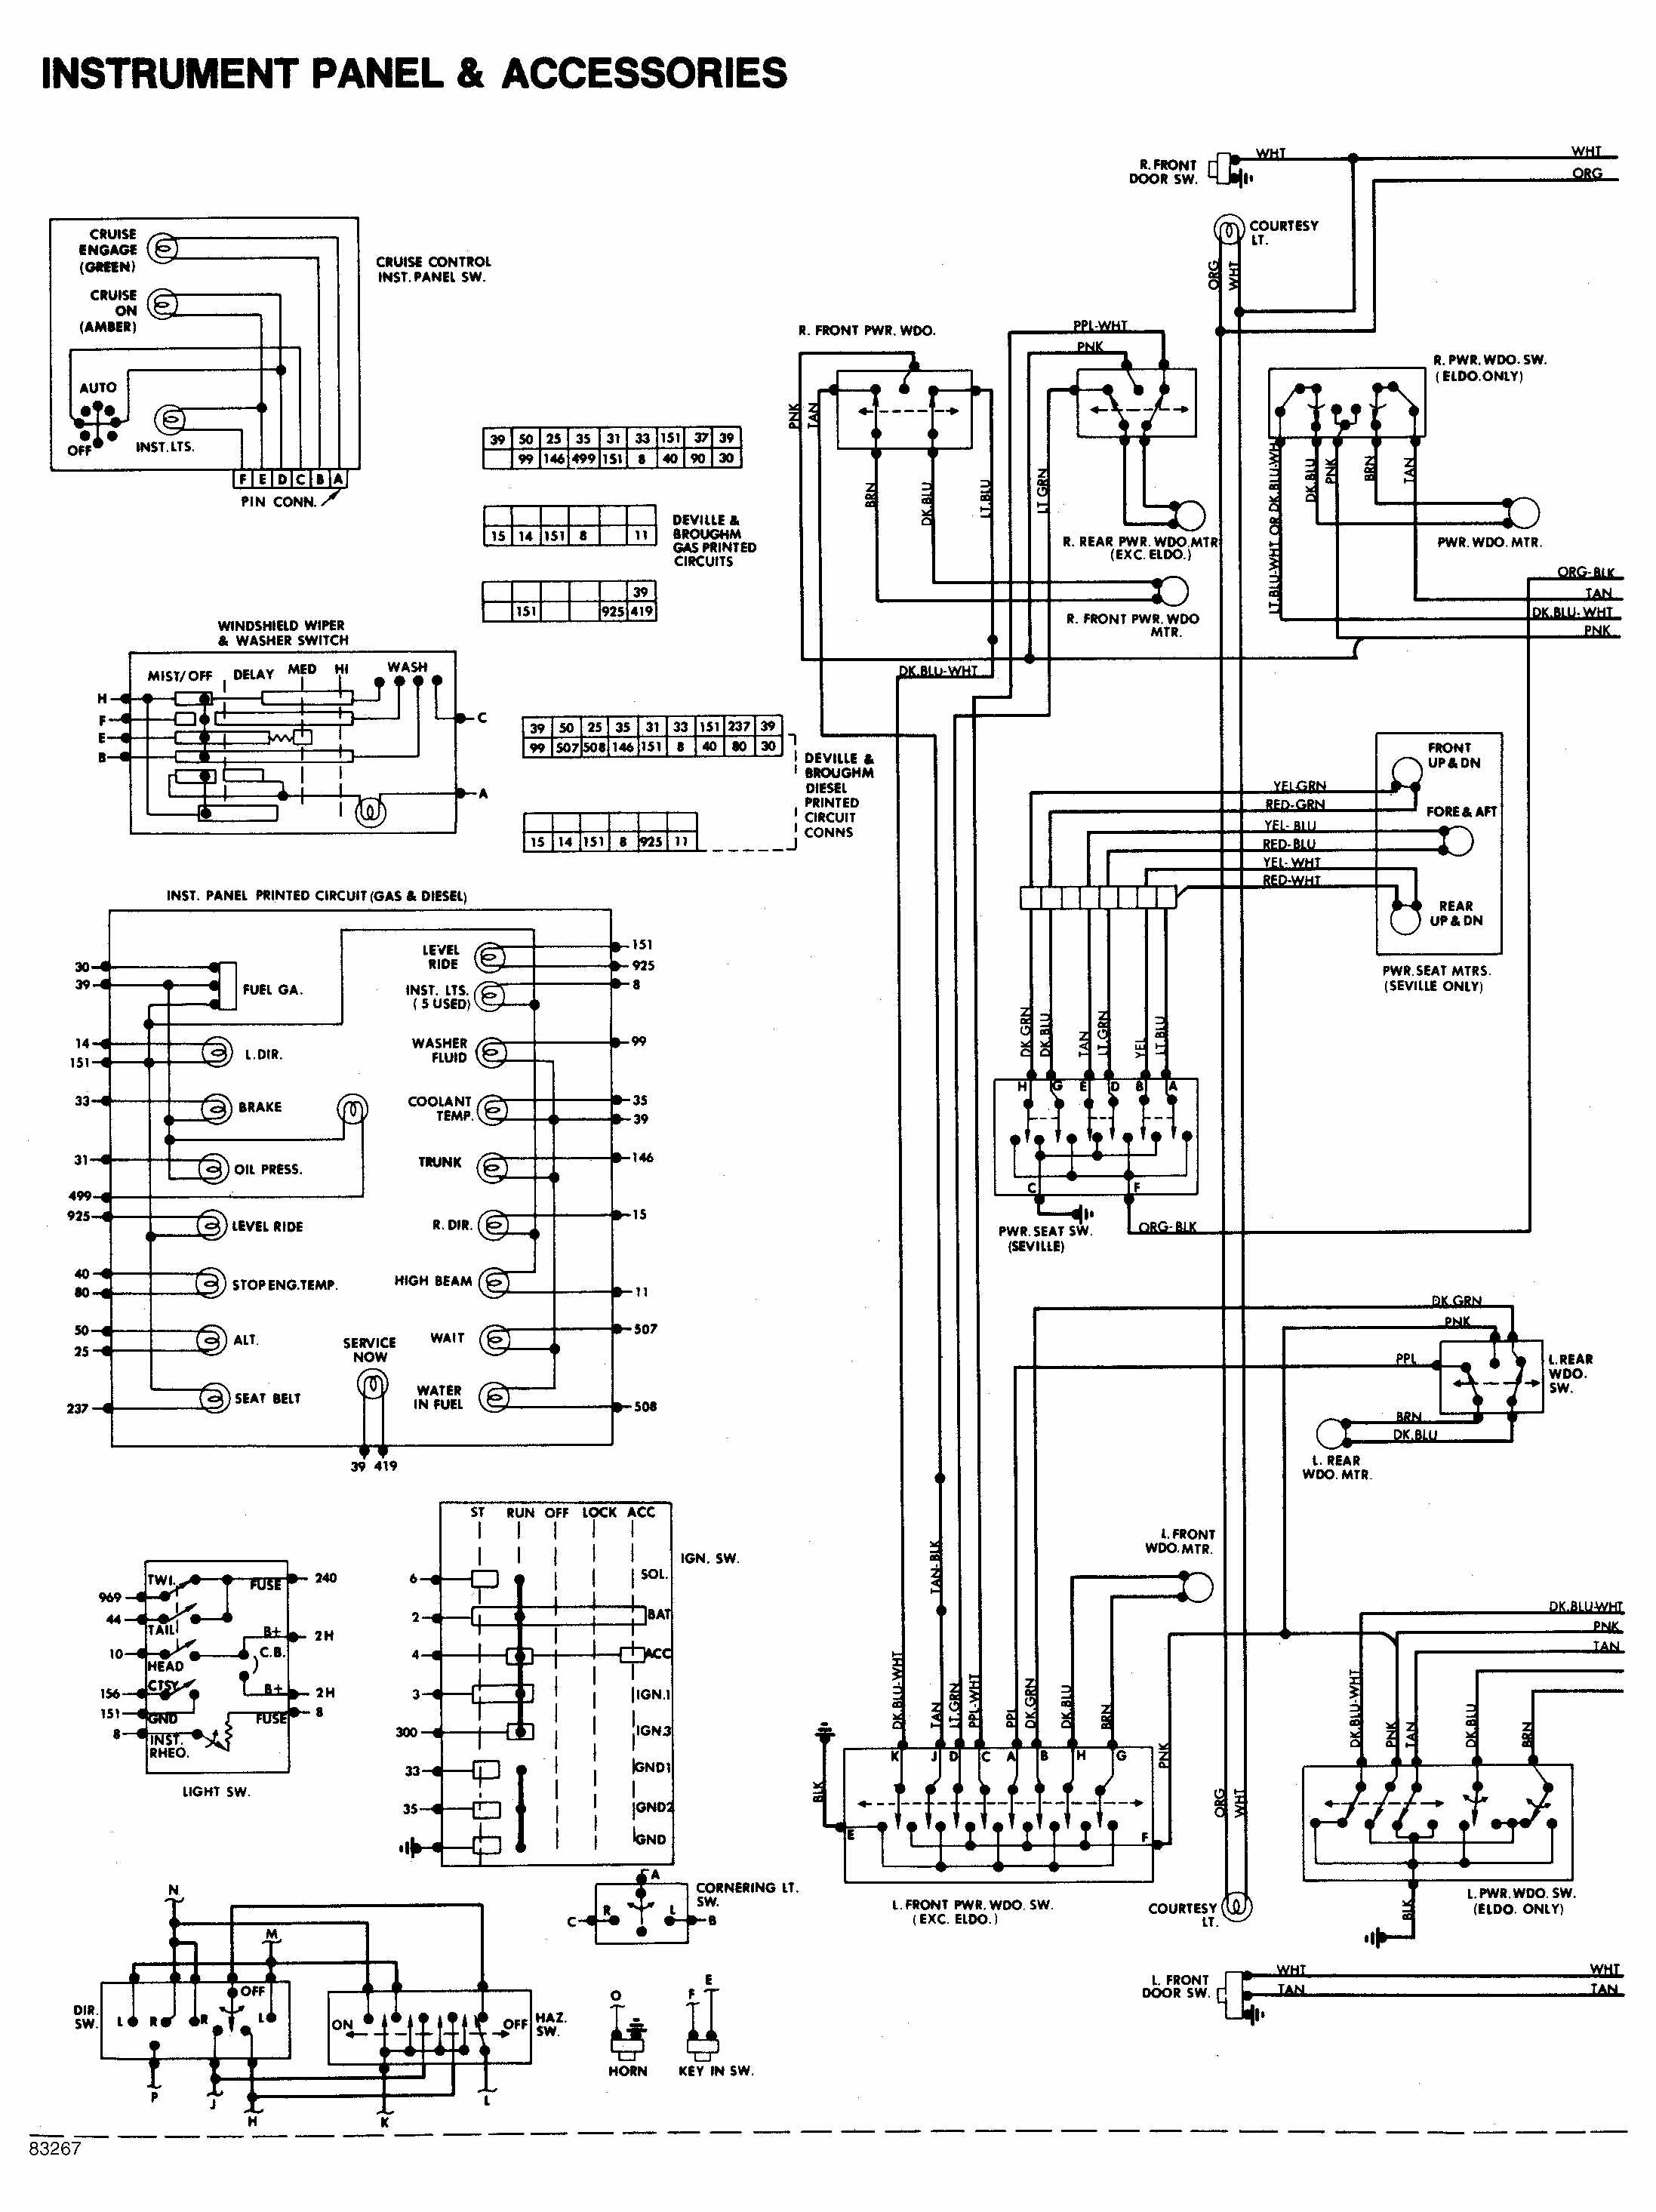 chevy diagrams rh wiring wizard com Chevy Headlight Switch Wiring Diagram Universal Headlight Switch Wiring Diagram